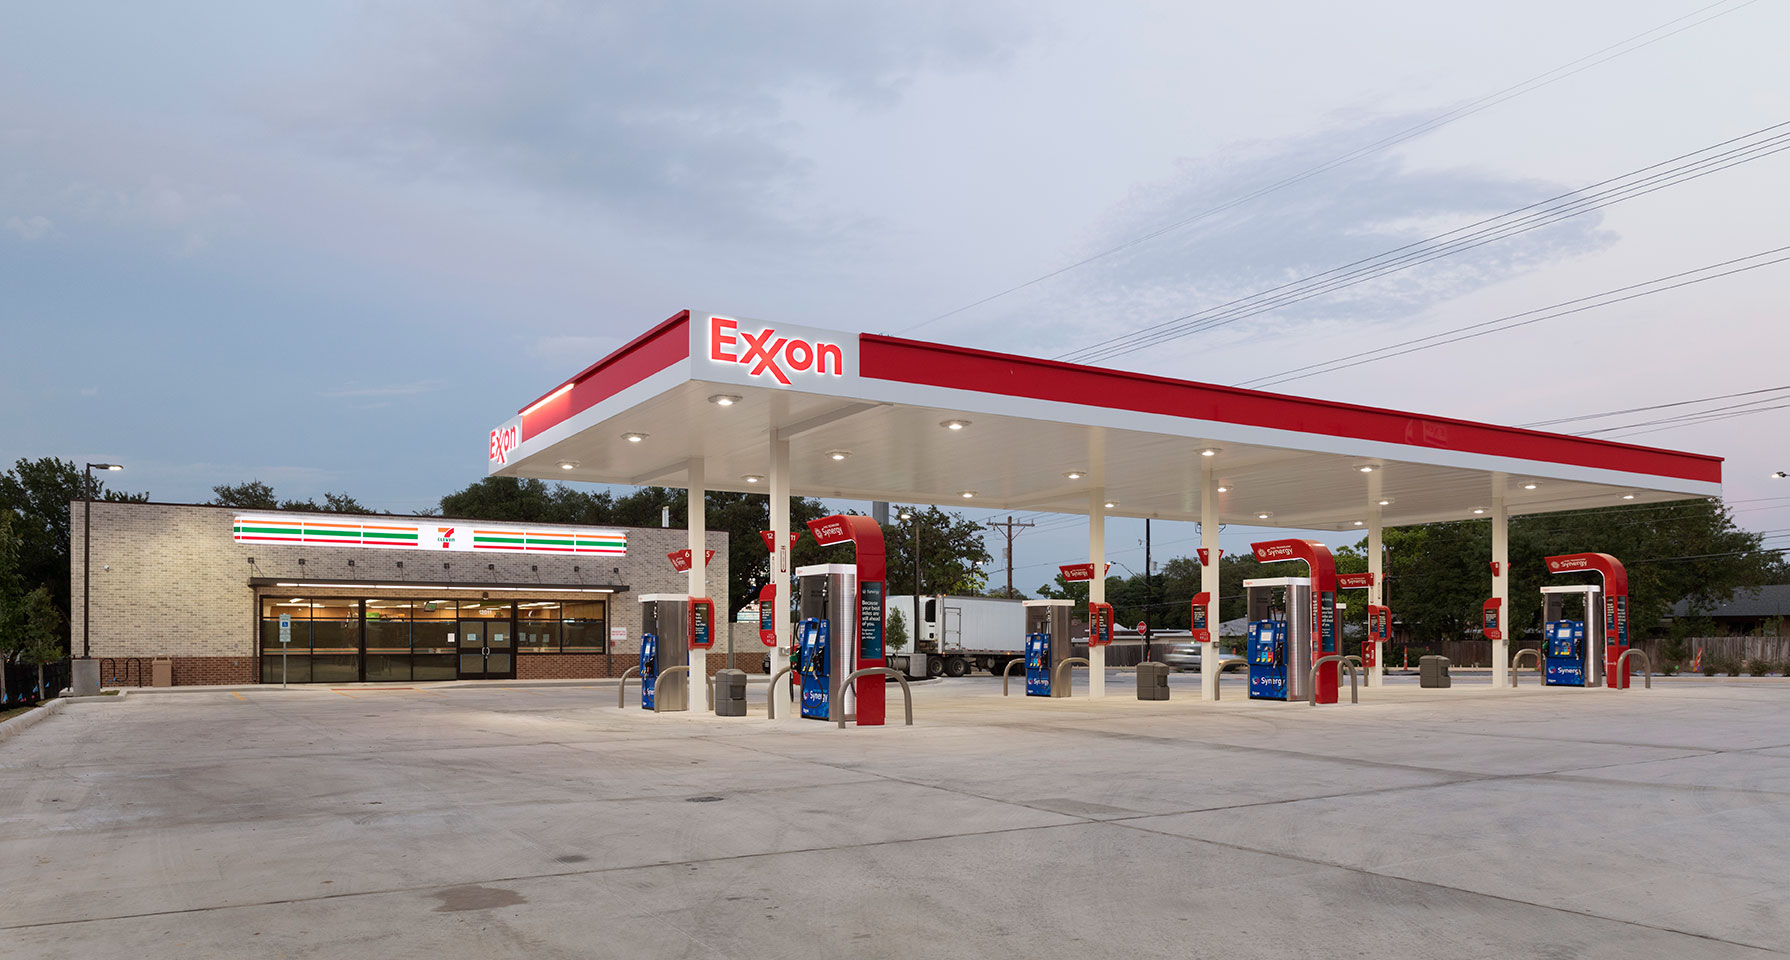 Ground-up construction of a 3,062-square-foot 7-Eleven convenience store with gas station at 12011 West Ave. in San Antonio, Texas.